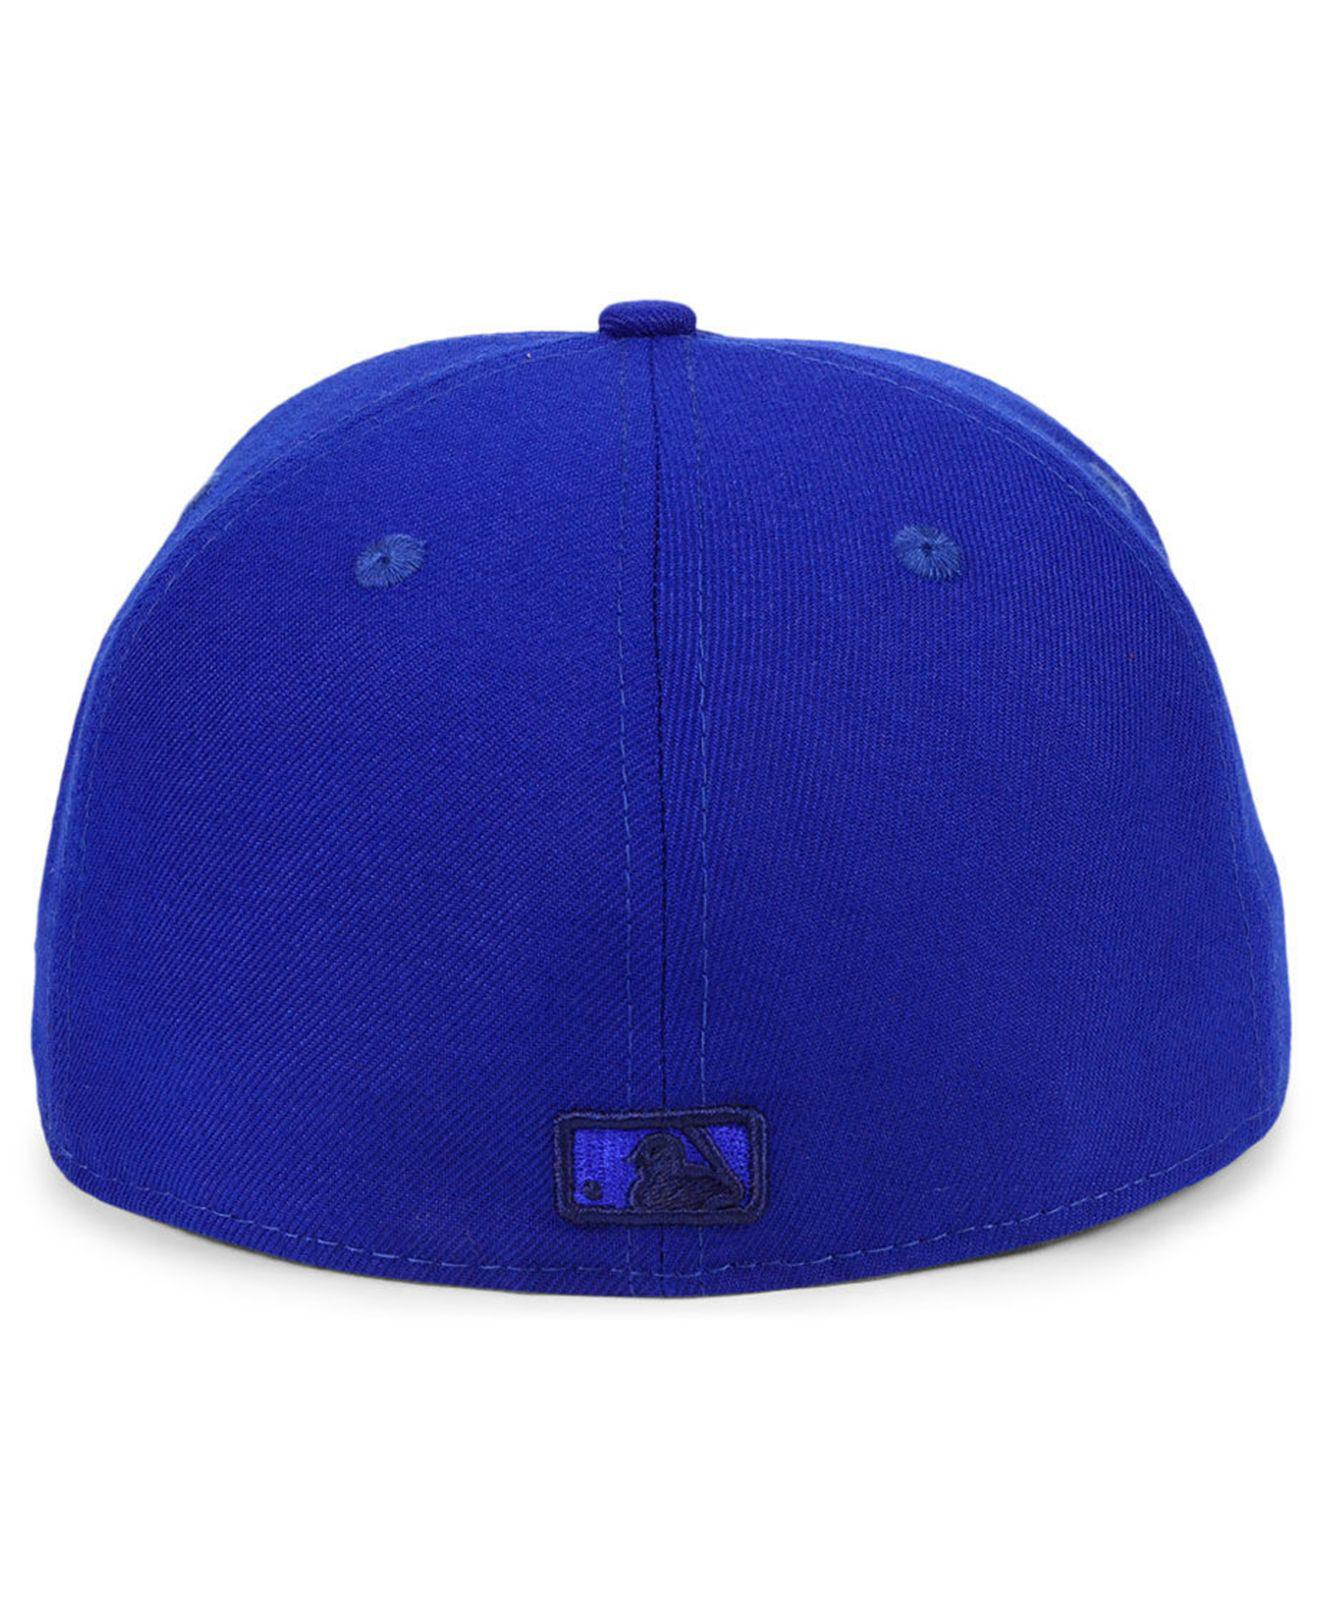 buy online e366e 3bf0b ... new arrivals lyst ktz kansas city royals prism color pack 59fifty  fitted cap in 93c58 656ea